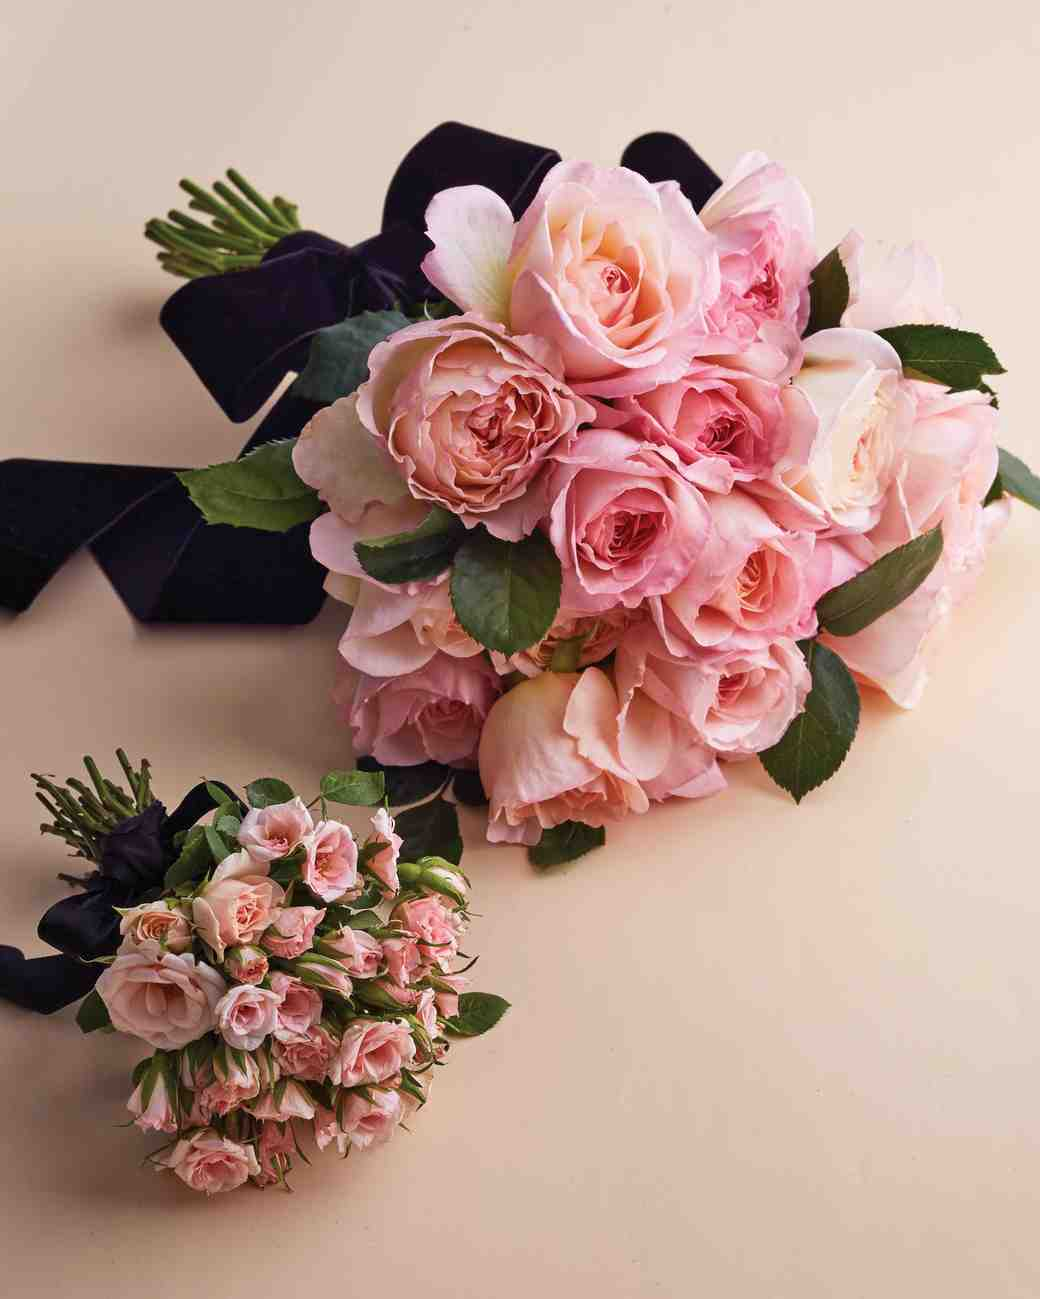 Rose Wedding Ideas: Pretty In Pink Wedding Bouquet Ideas